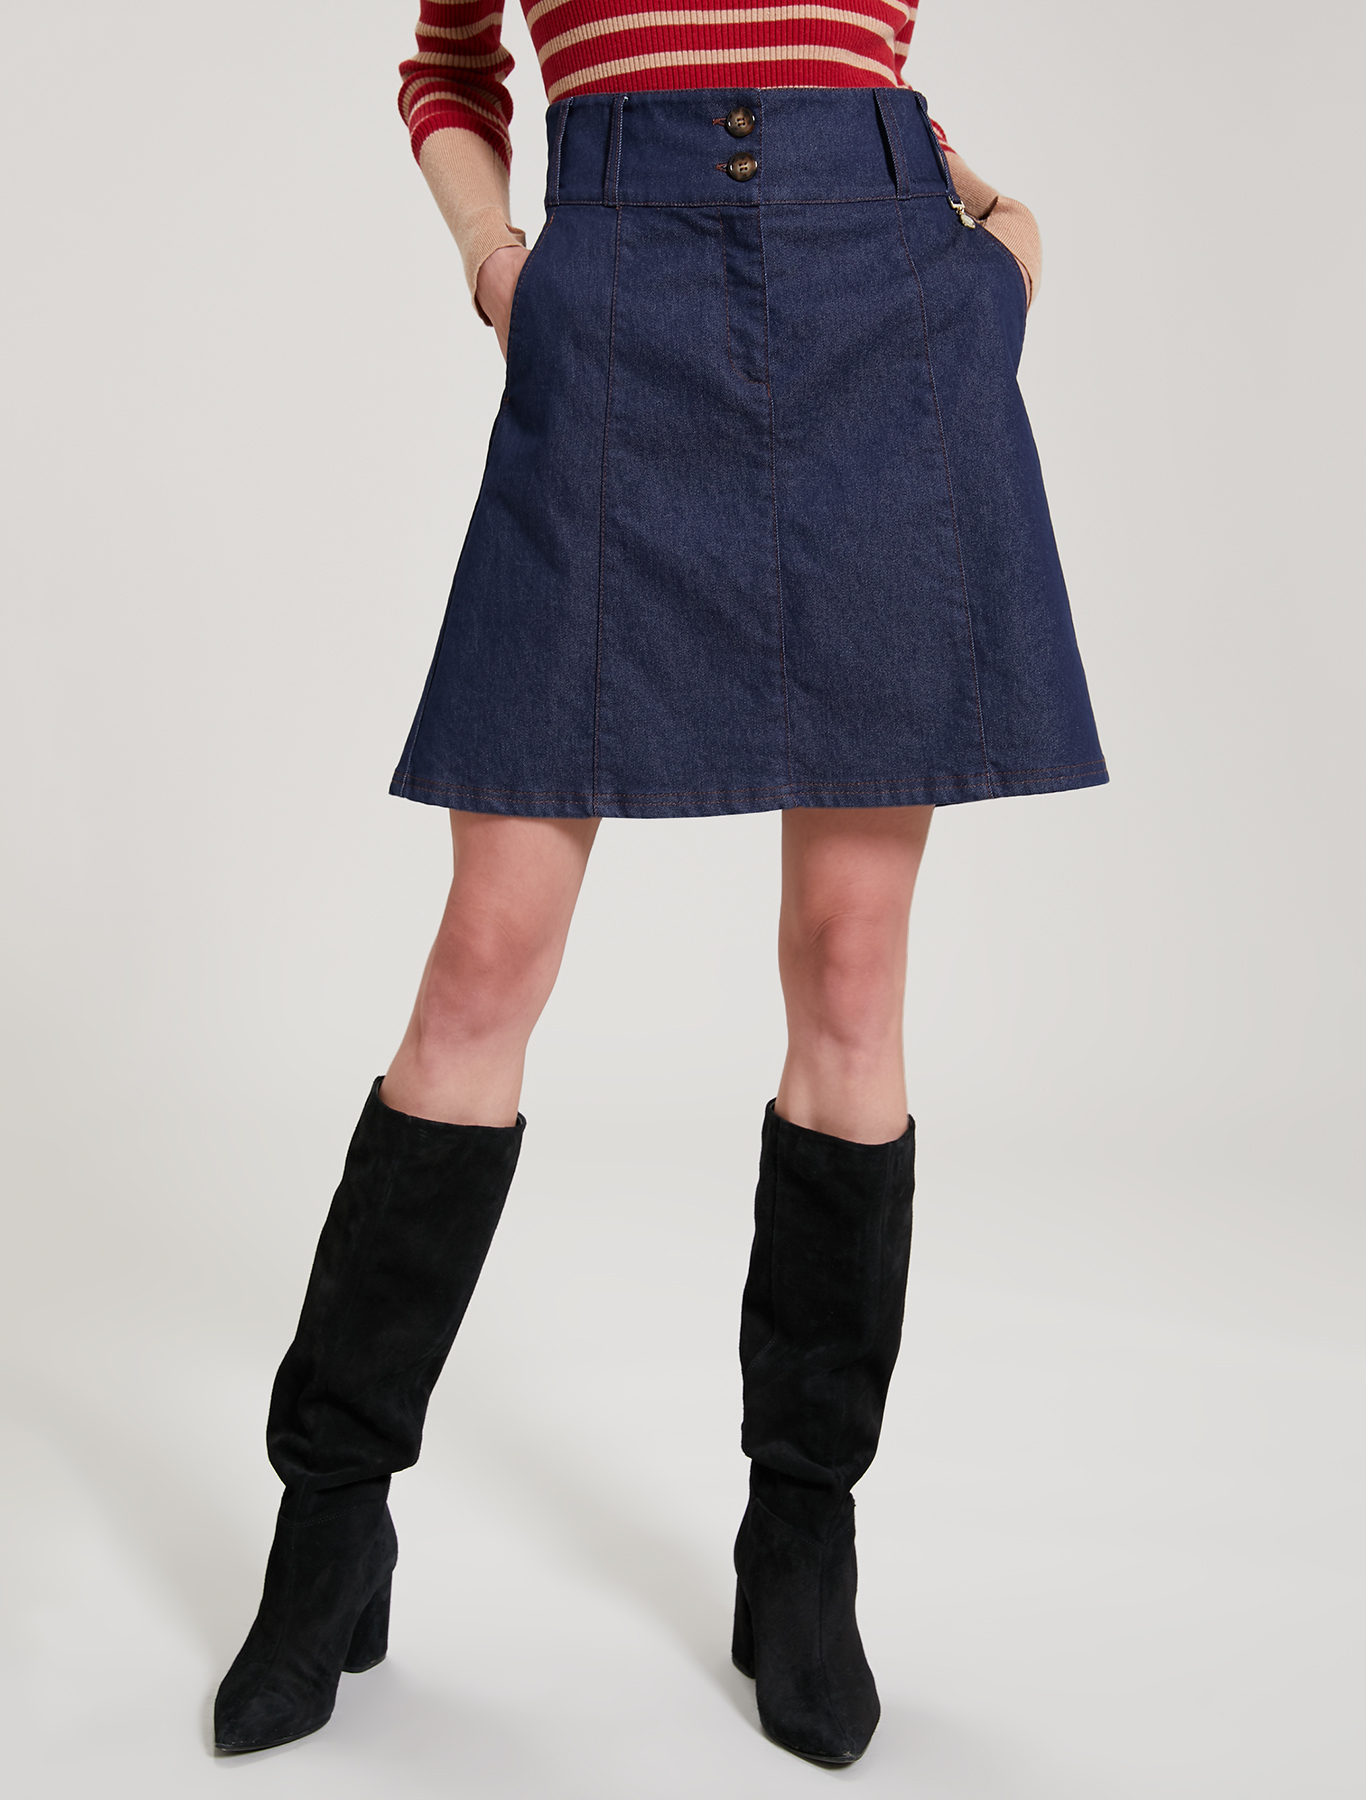 Blue denim skirt - midnight blue - pennyblack